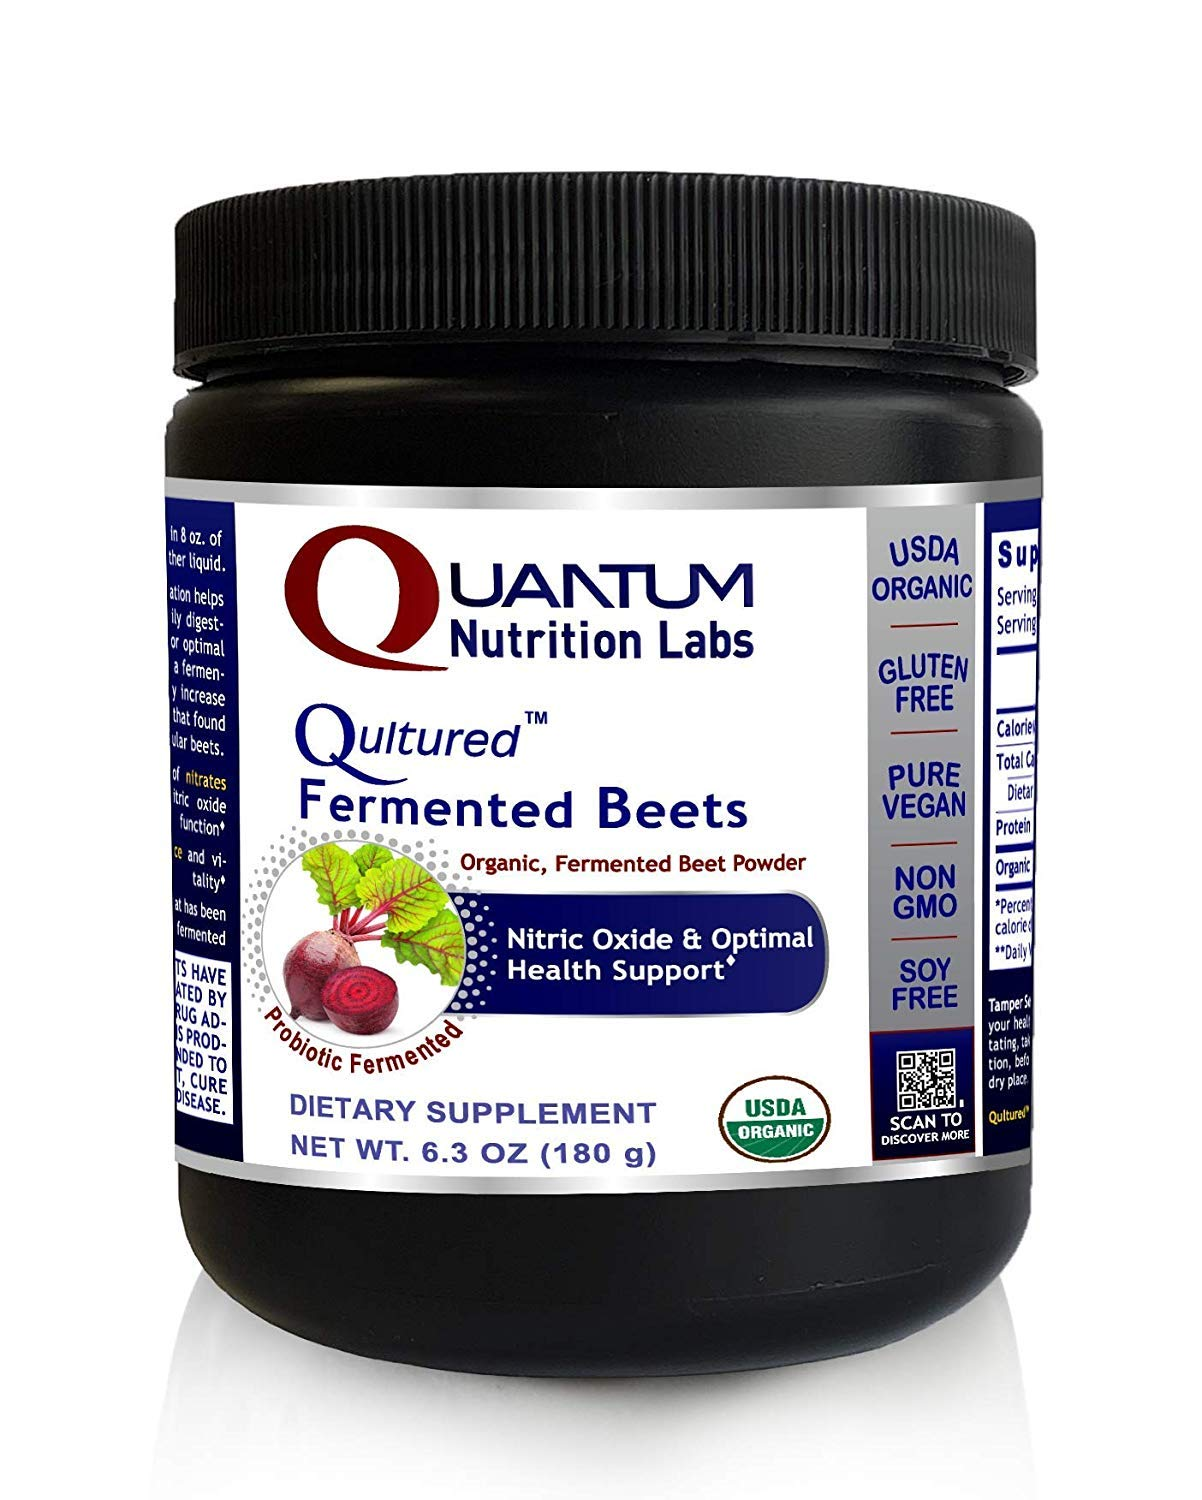 Qultured Fermented Beets, 25.2oz Powder, Organic Fermented Beets for Nitric Oxide & Health Support from Quantum Premier Research Labs